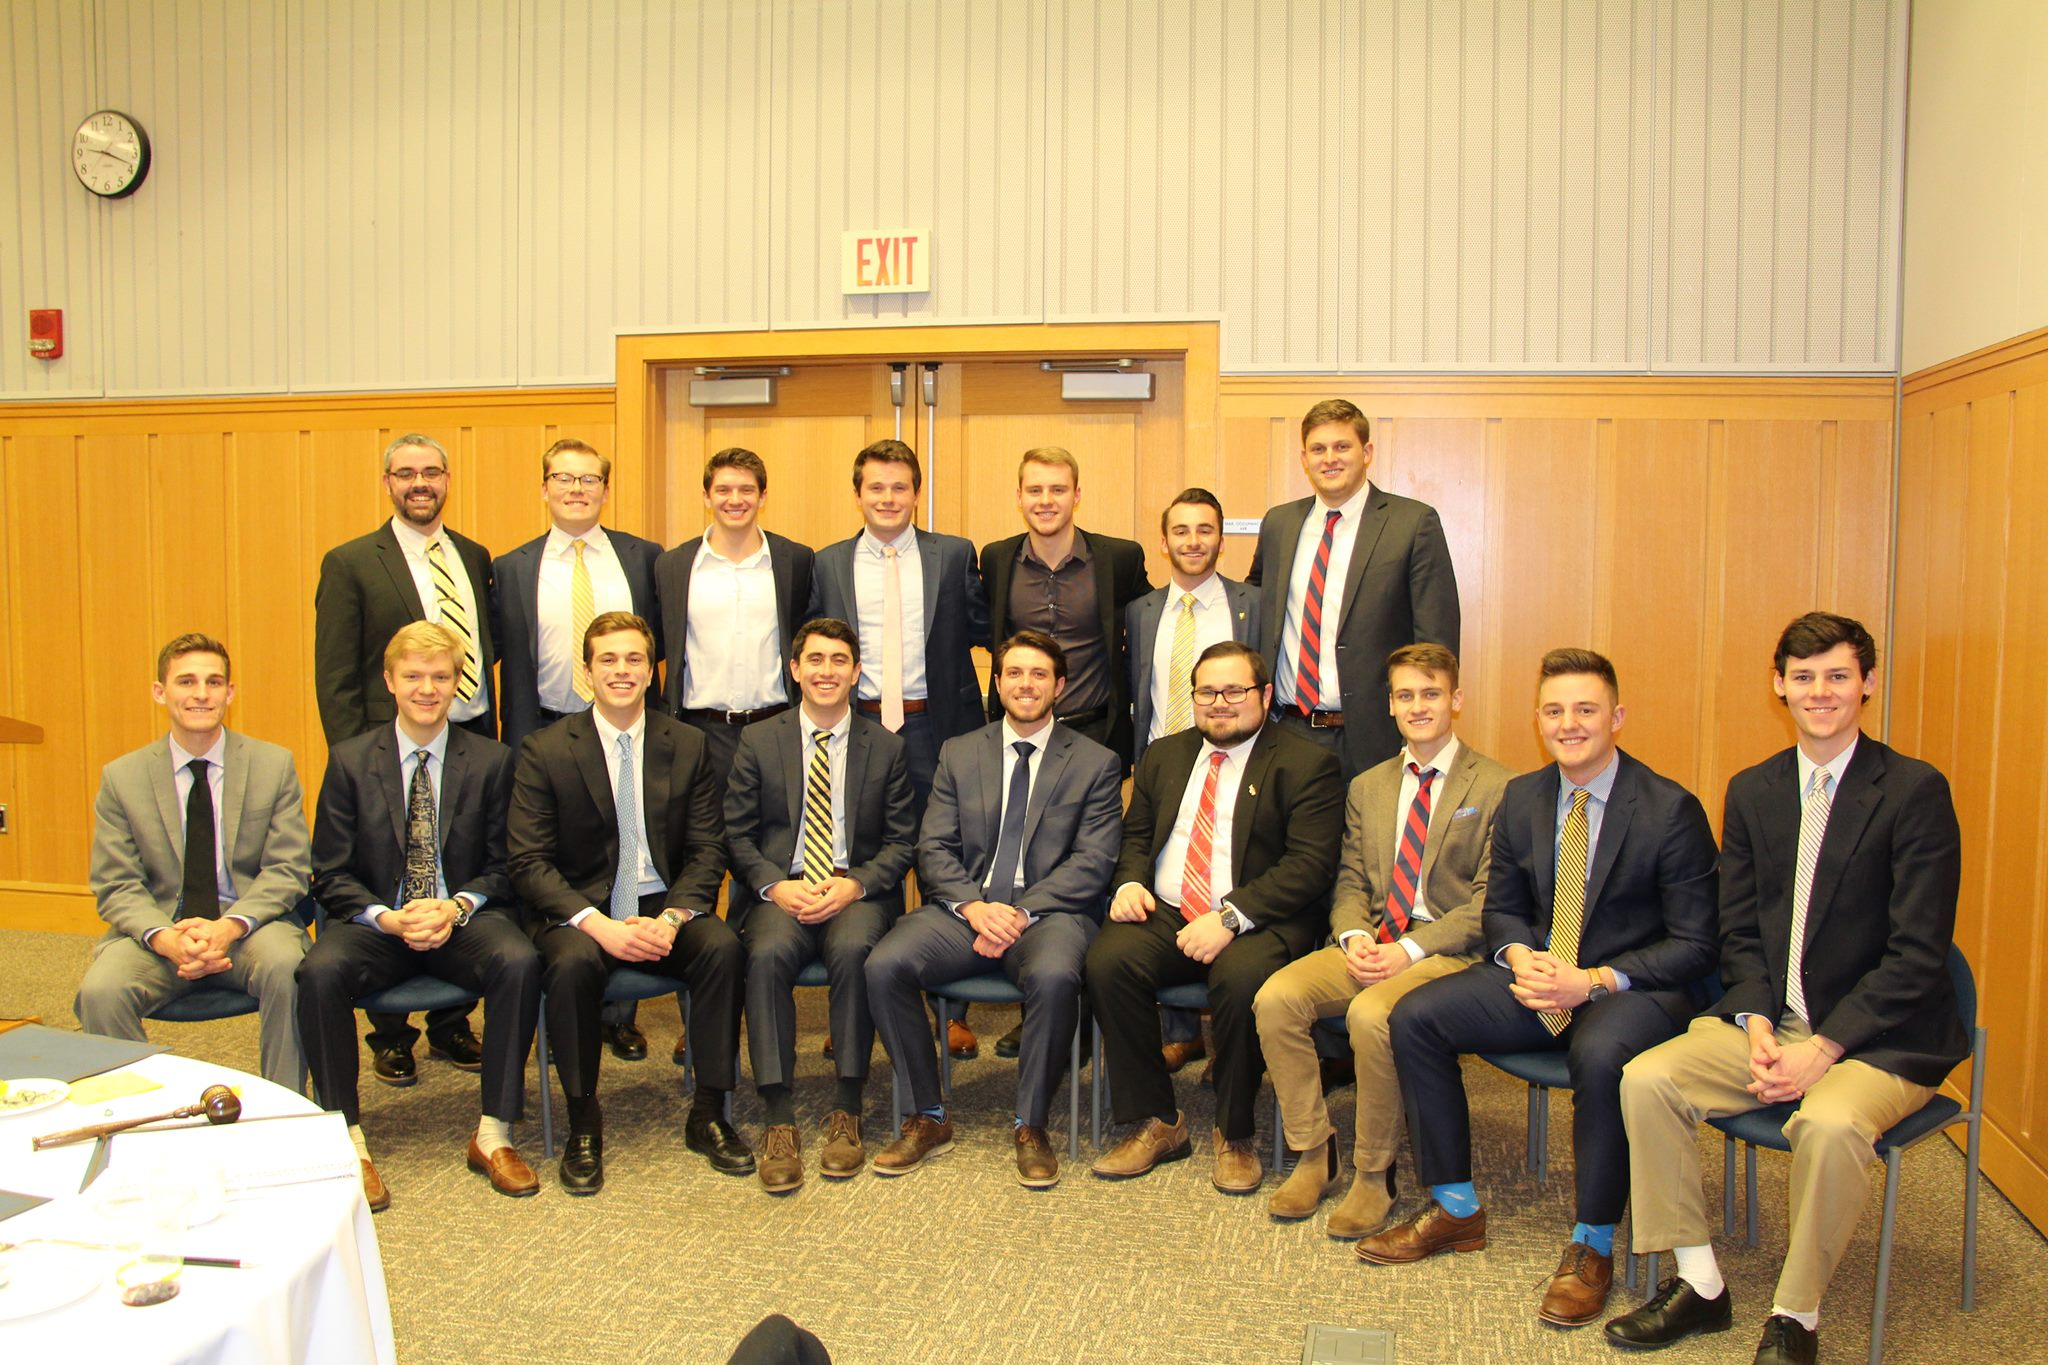 Joining the Interfraternity Council | Fraternity & Sorority Life